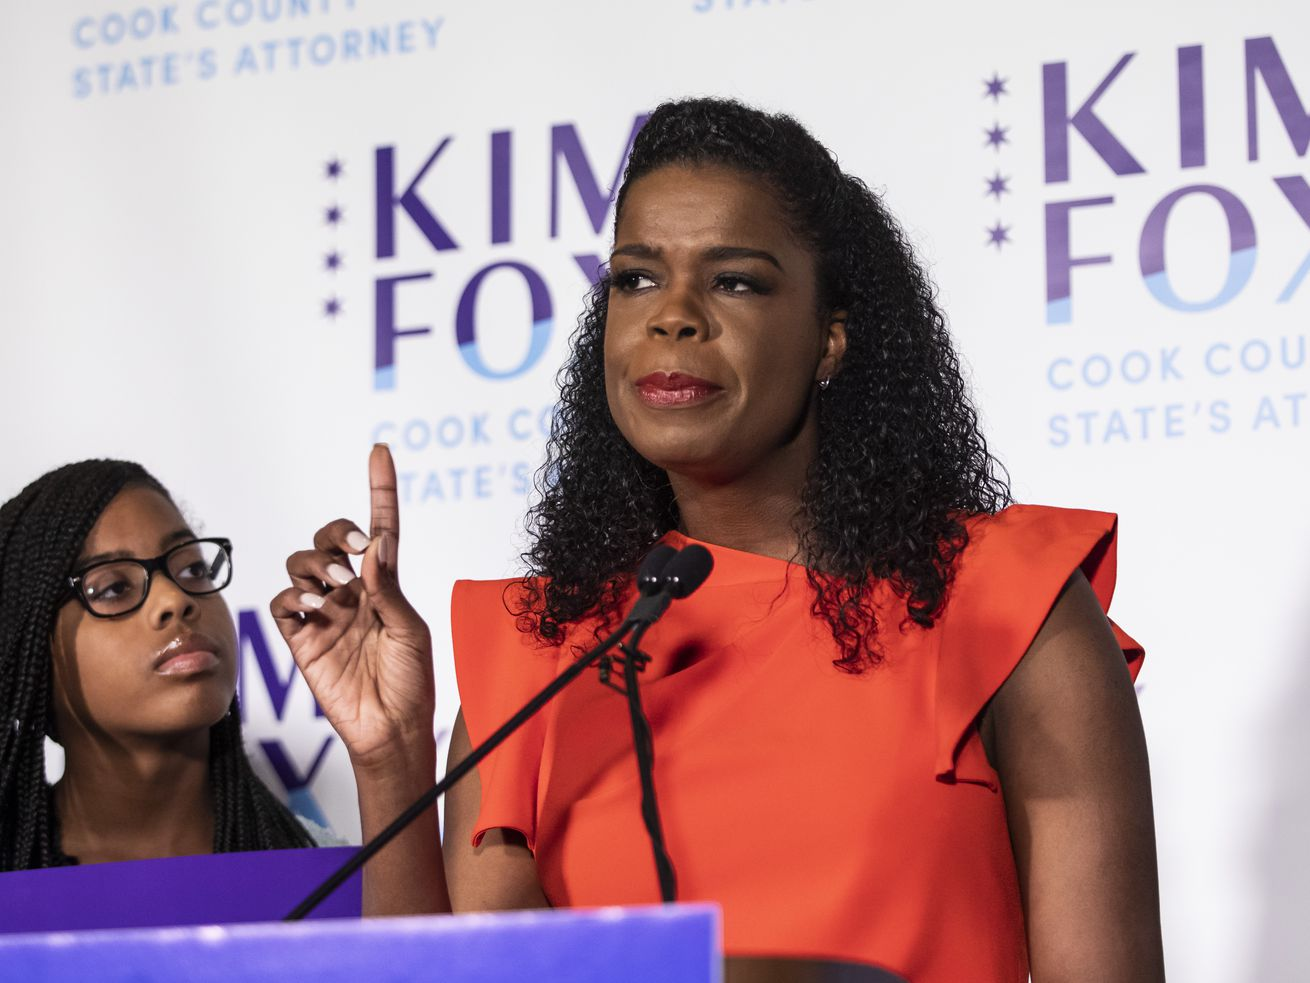 For Kim Foxx, Jussie Smollett proved 'a blip' for primary voters